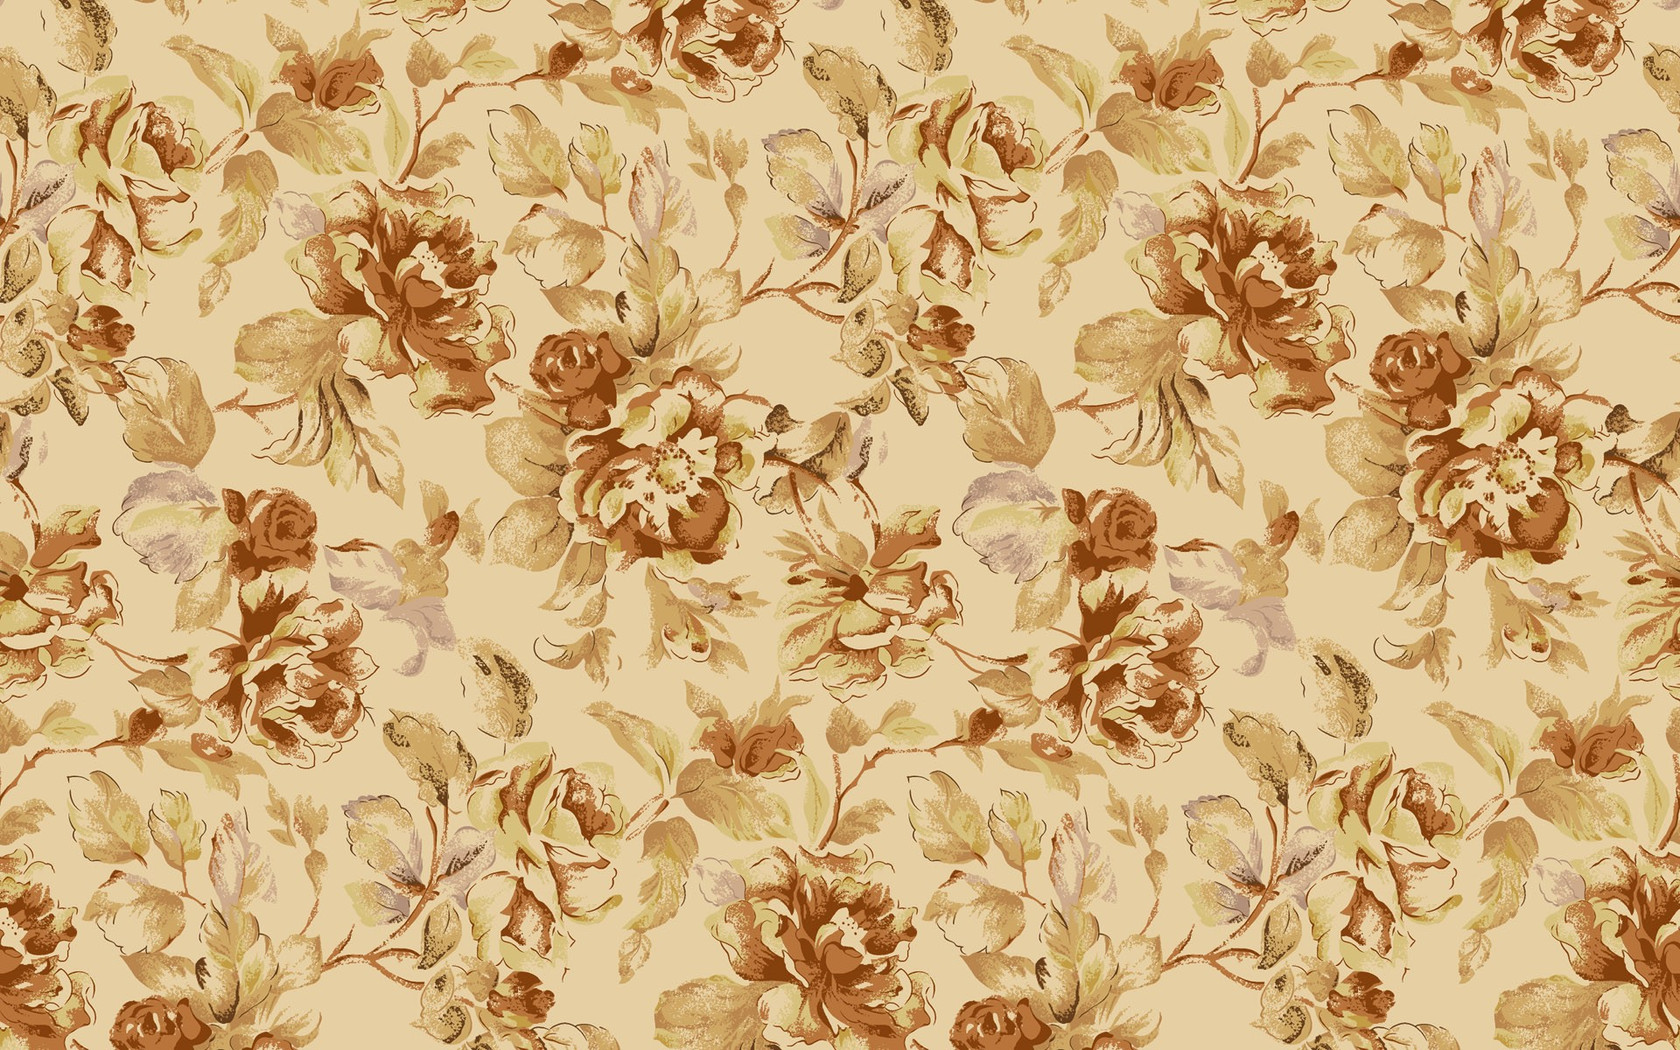 Vintage Flower Pattern Wallpaper 1680x1050 35121